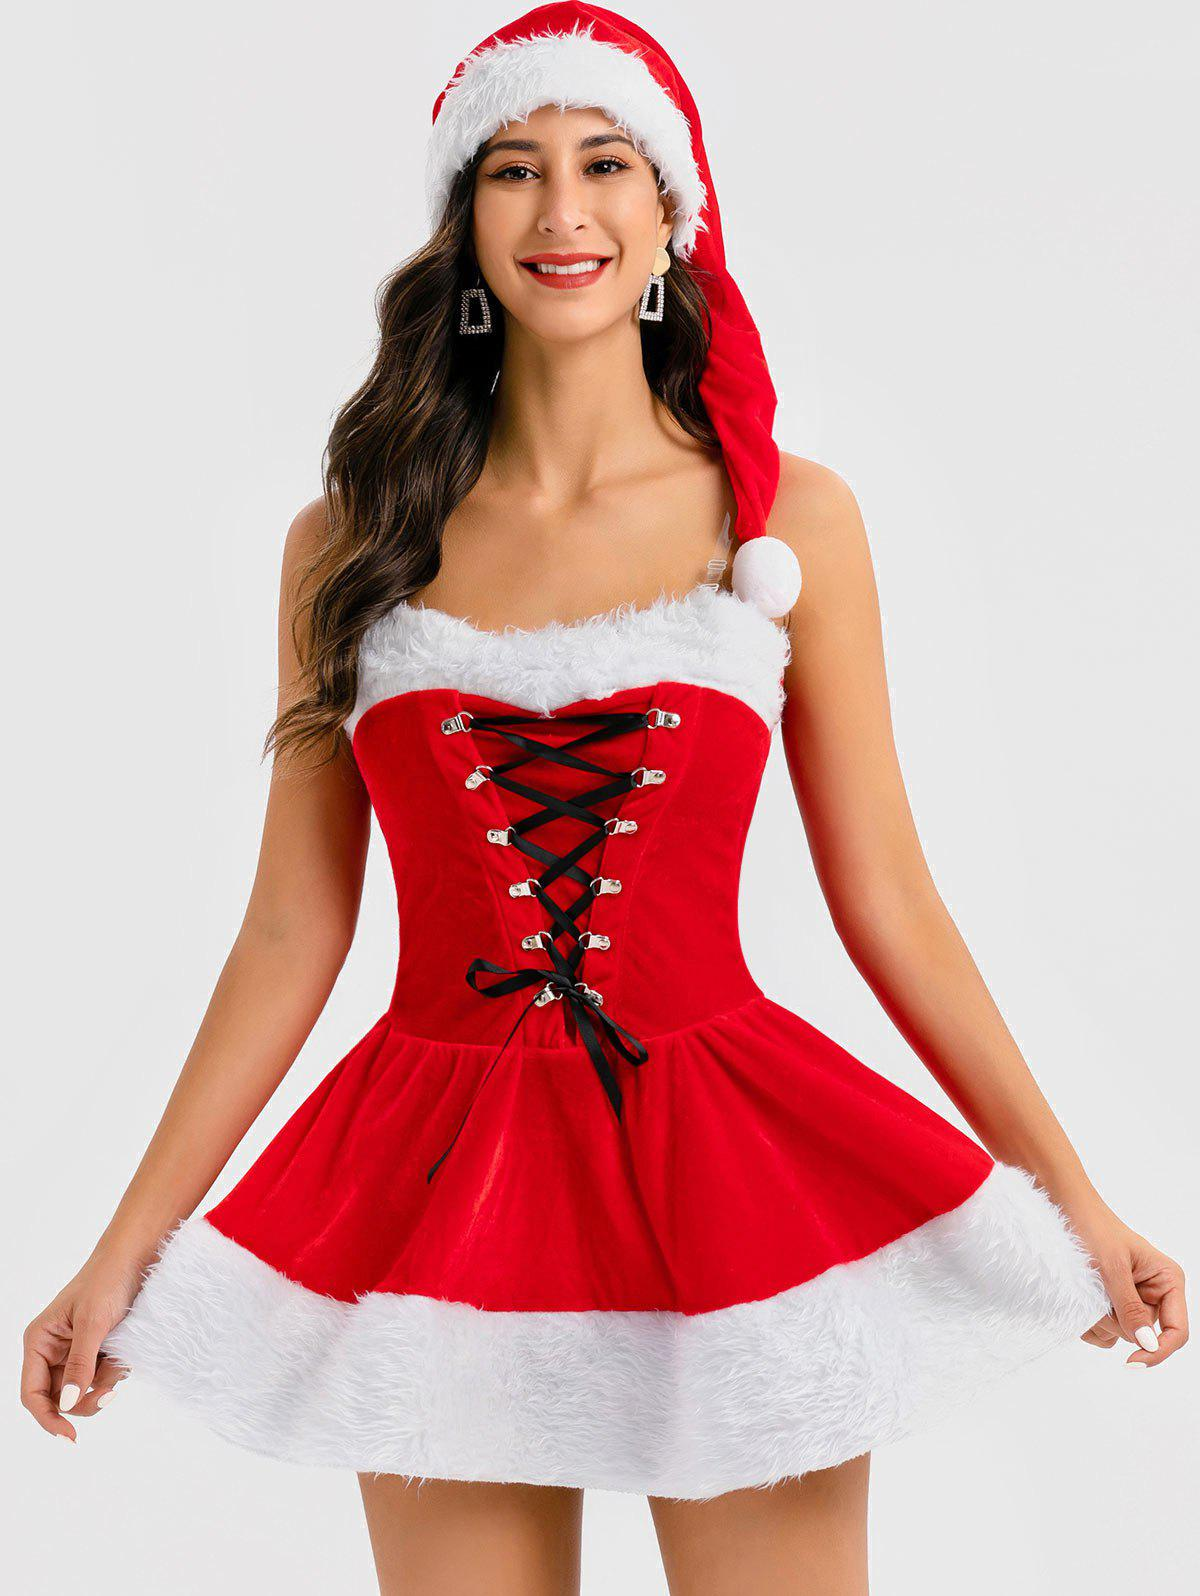 New Christmas Lace Up Cosplay Mini Dress with Hat